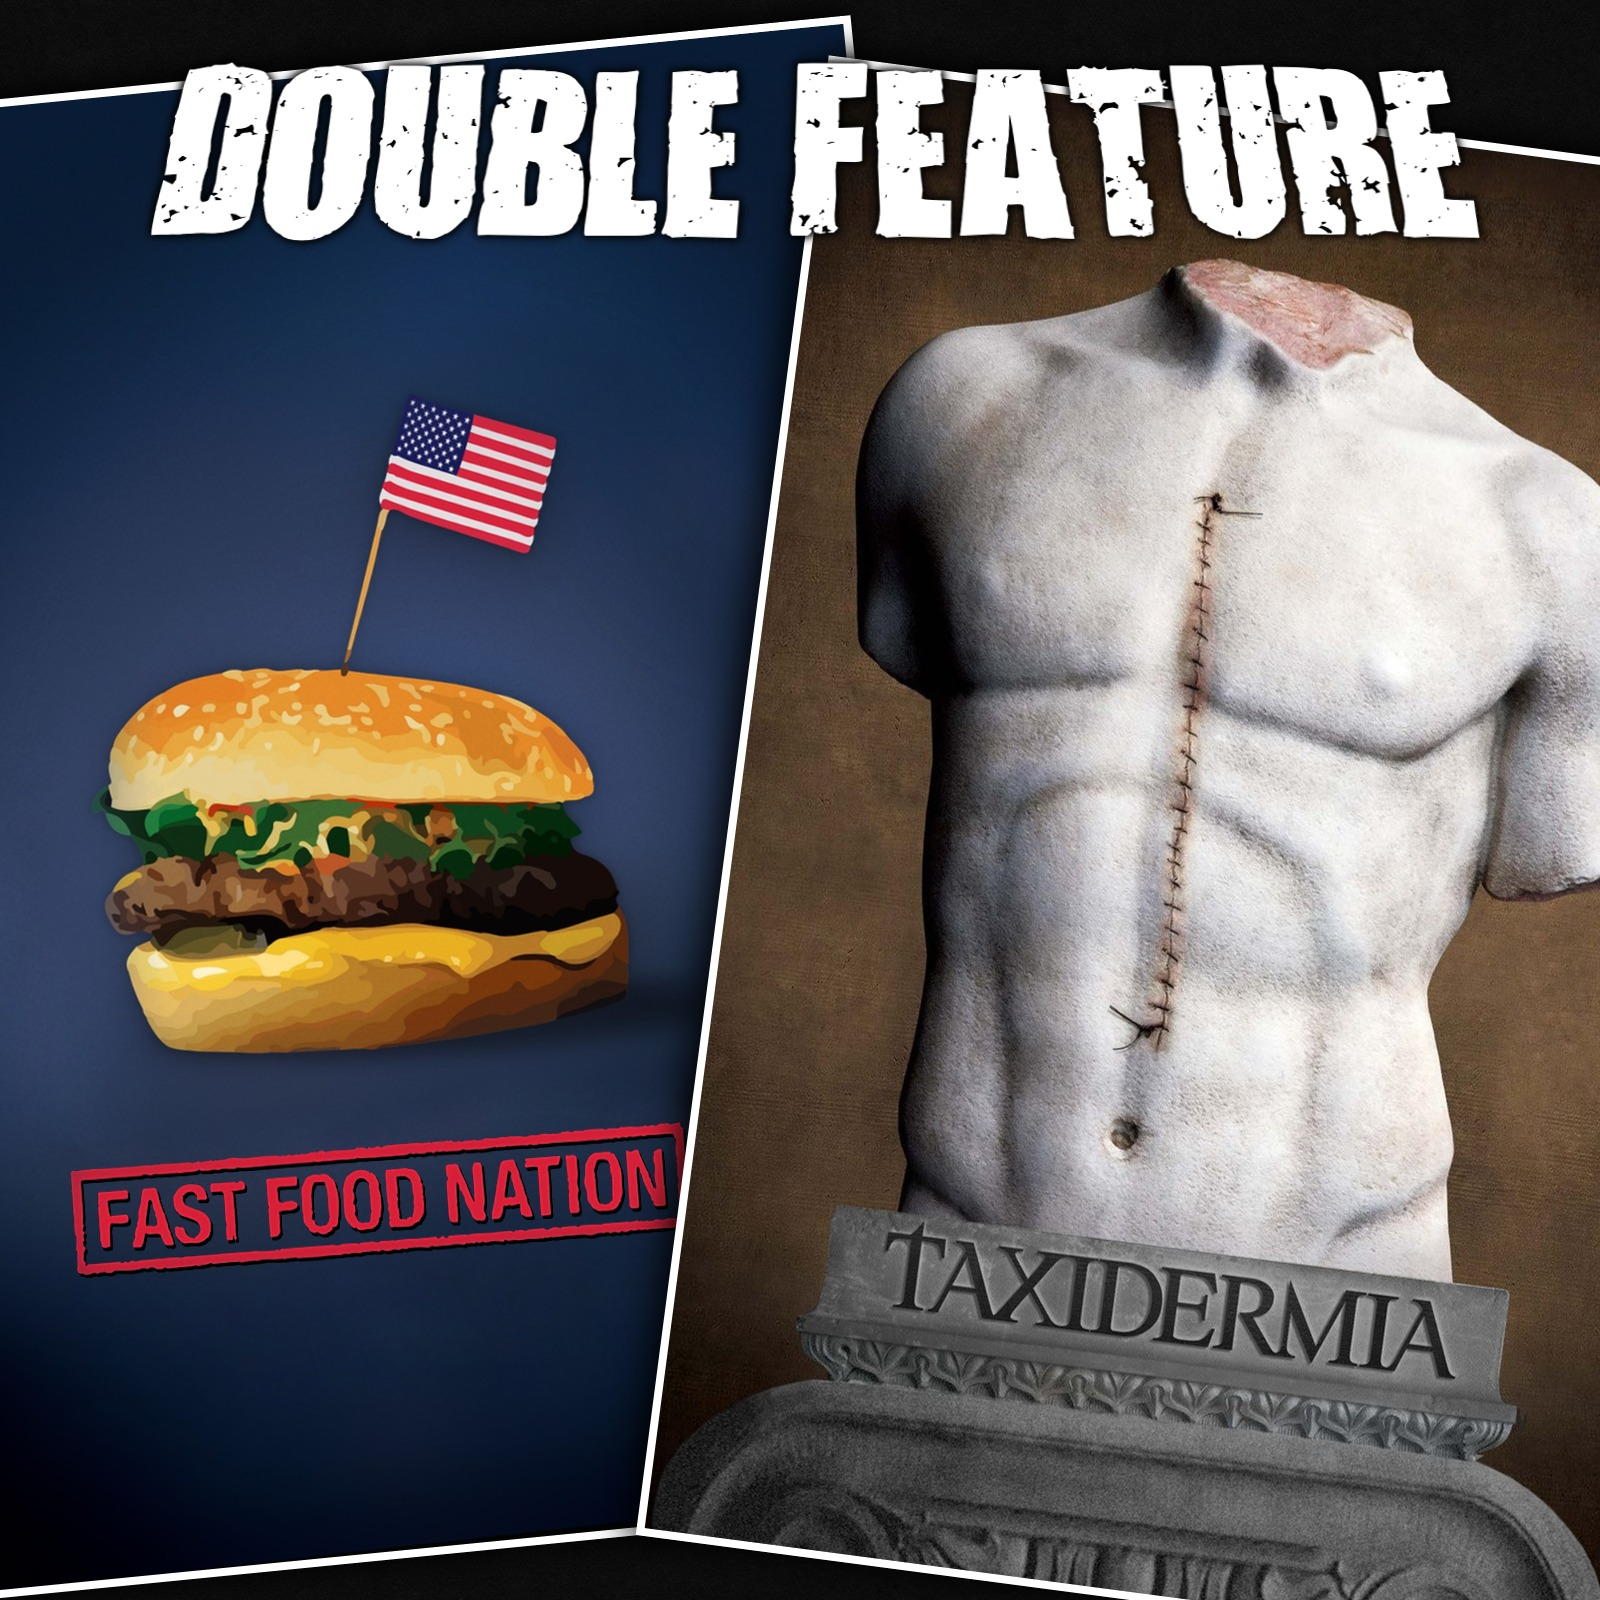 "essays about fast food nation The non-fiction book ""fast food nation"" by eric schlosser writes about how the fast food industry works from different viewpoints throughout the book it can be very disturbing and very real about the fast food industry."